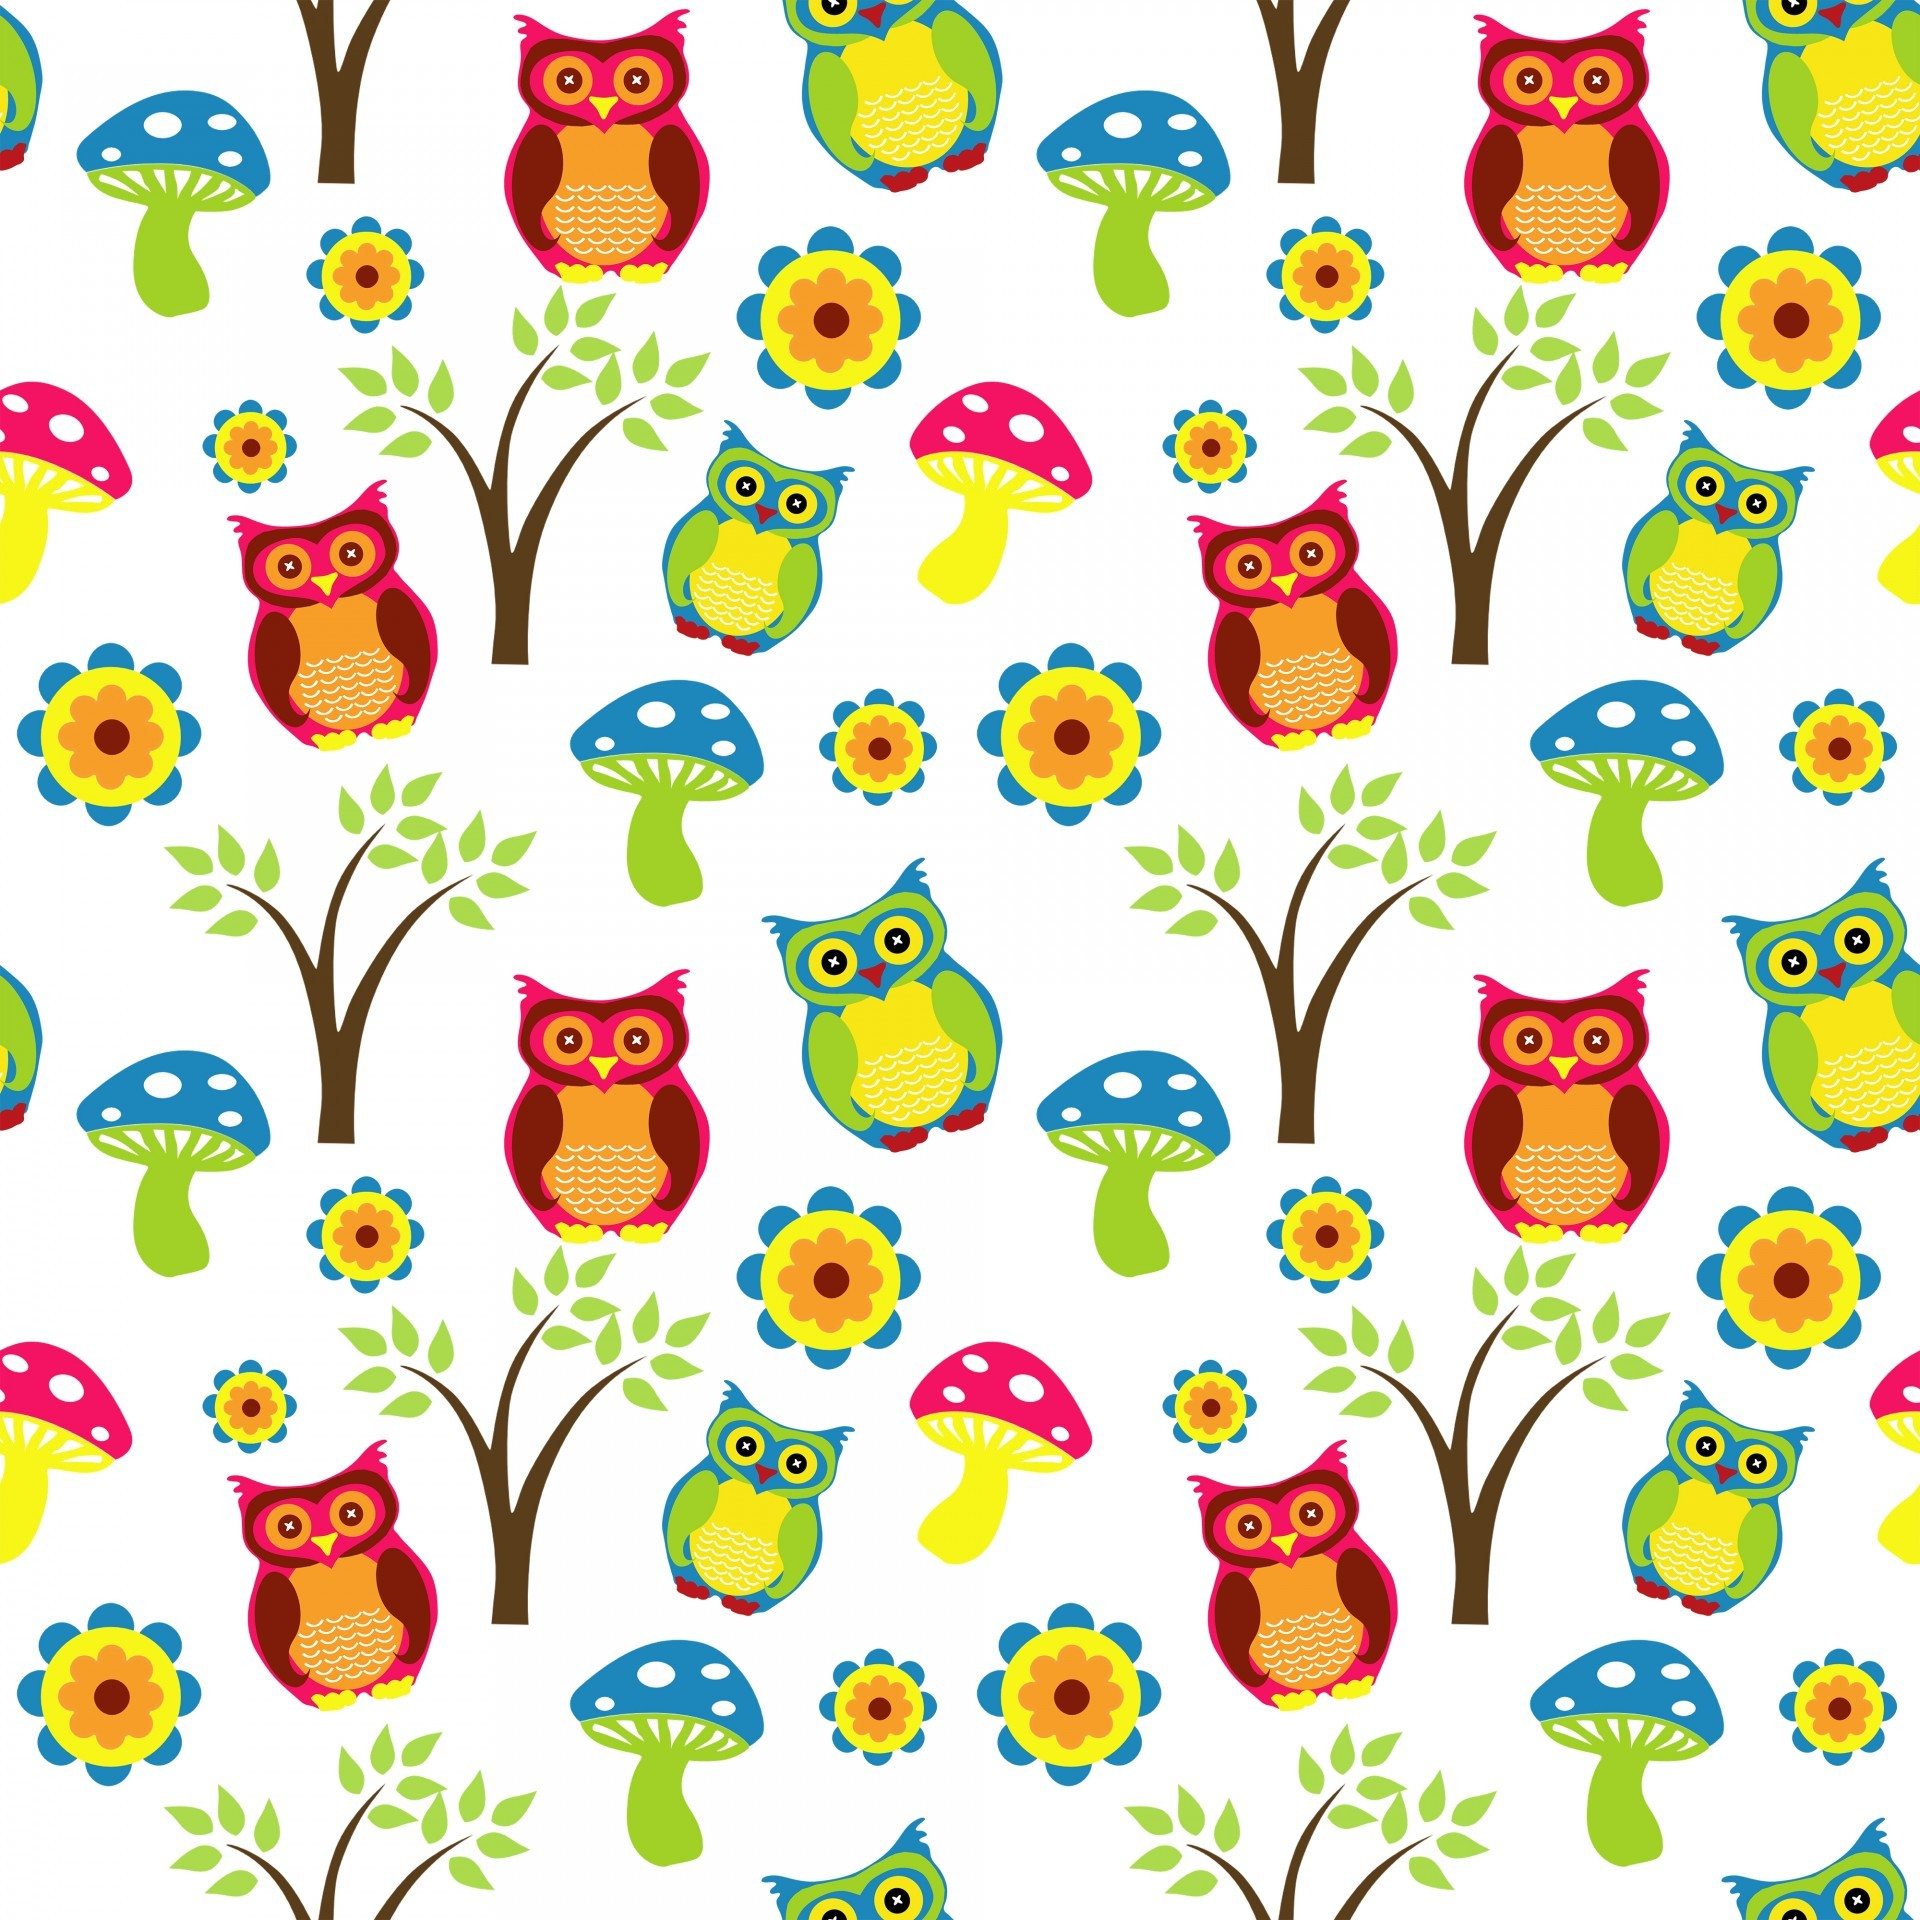 Owl background clipart freeuse library 71+ Cute Owl Wallpapers on WallpaperPlay freeuse library